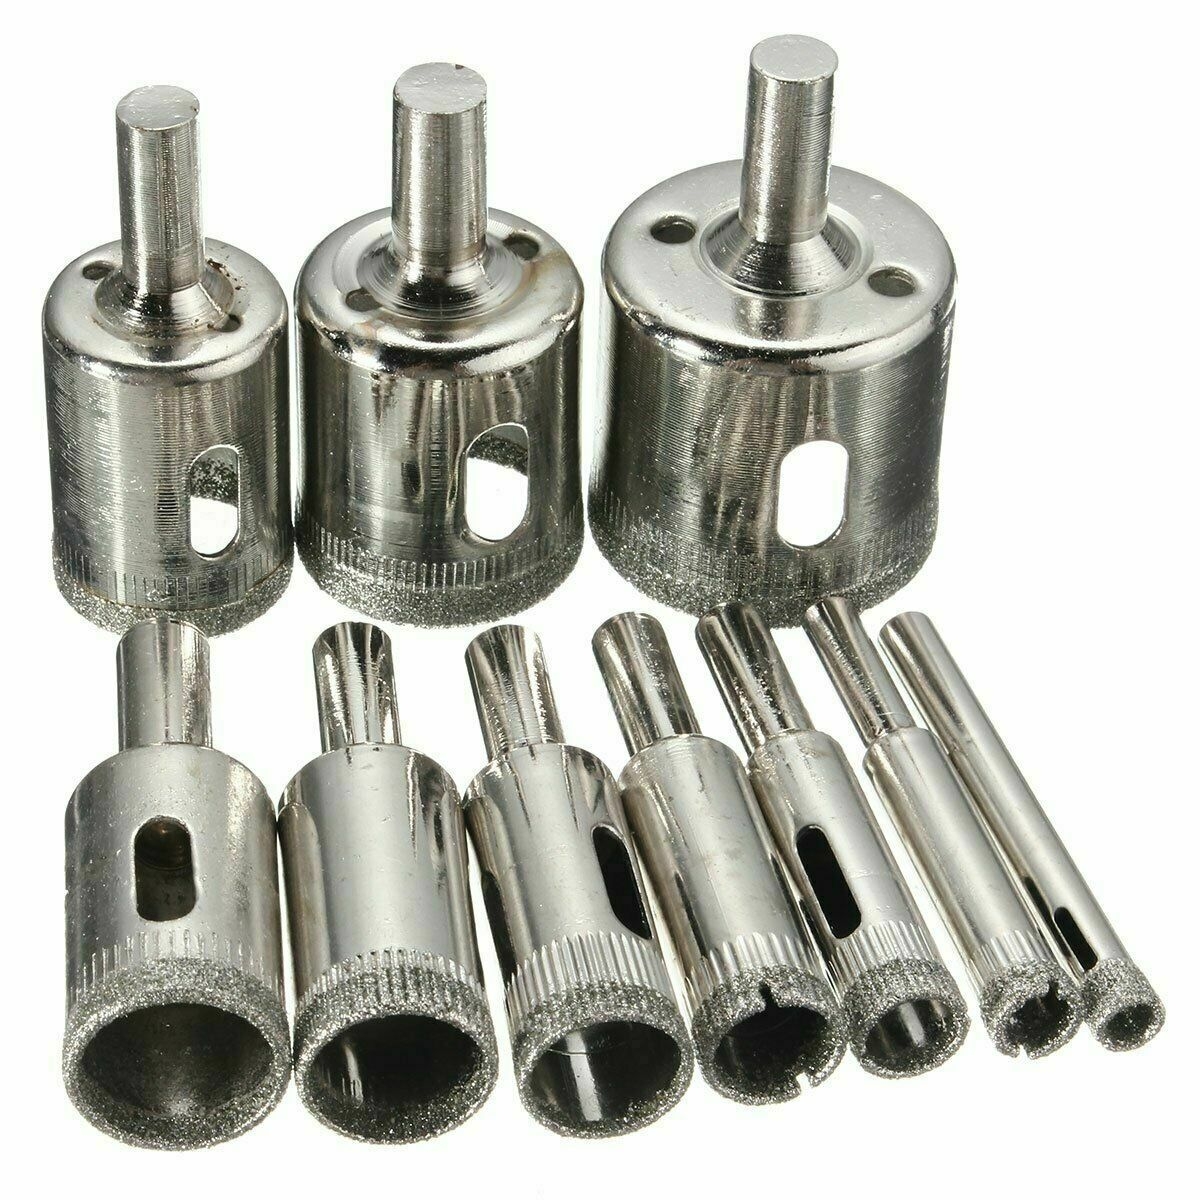 NEW DIAMOND DRILL BITS FOR GLASS CERAMIC TILE PORCELAIN HOLE MAKER SAW CUTTING SET